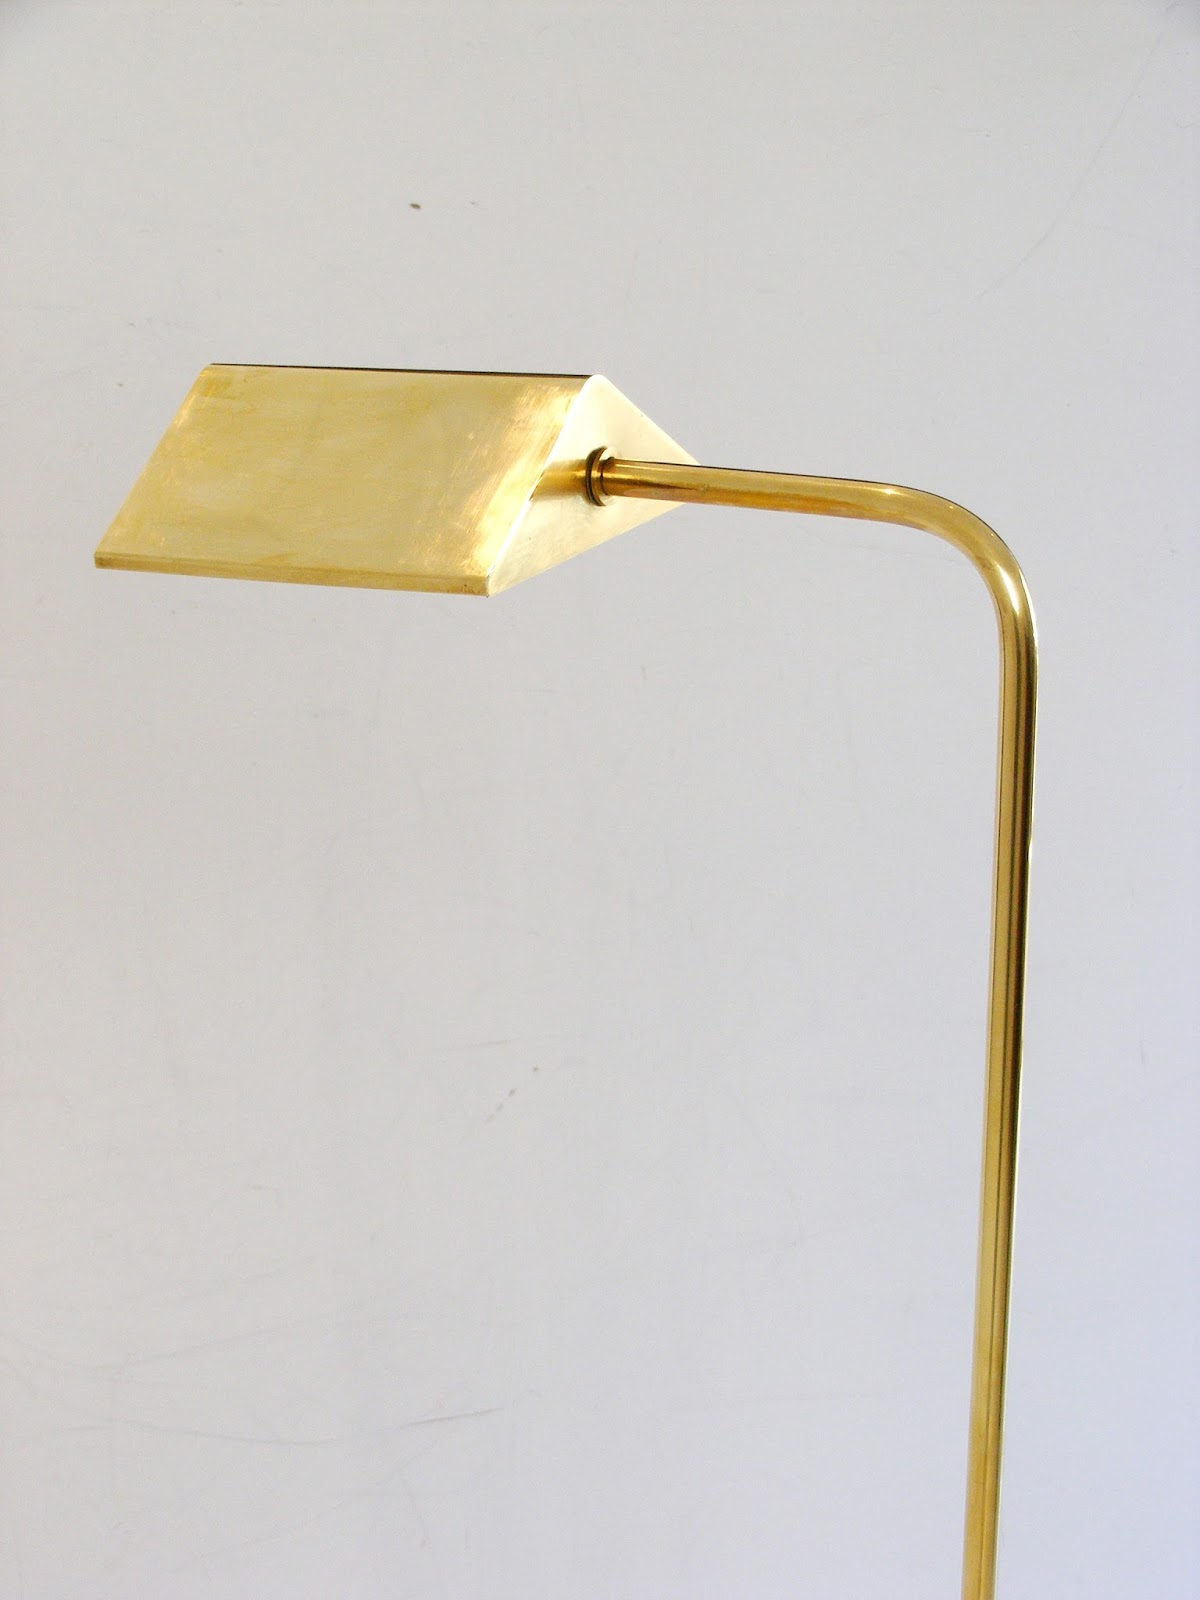 Vamp furniture a solid brass scandinavian pharmacy lamp 18 adjustable scandinavian pharmacy lamp base 37cm height as per pic 144cm r4250 call us on 021 448 2755 or email us on infovampfurniture arubaitofo Images